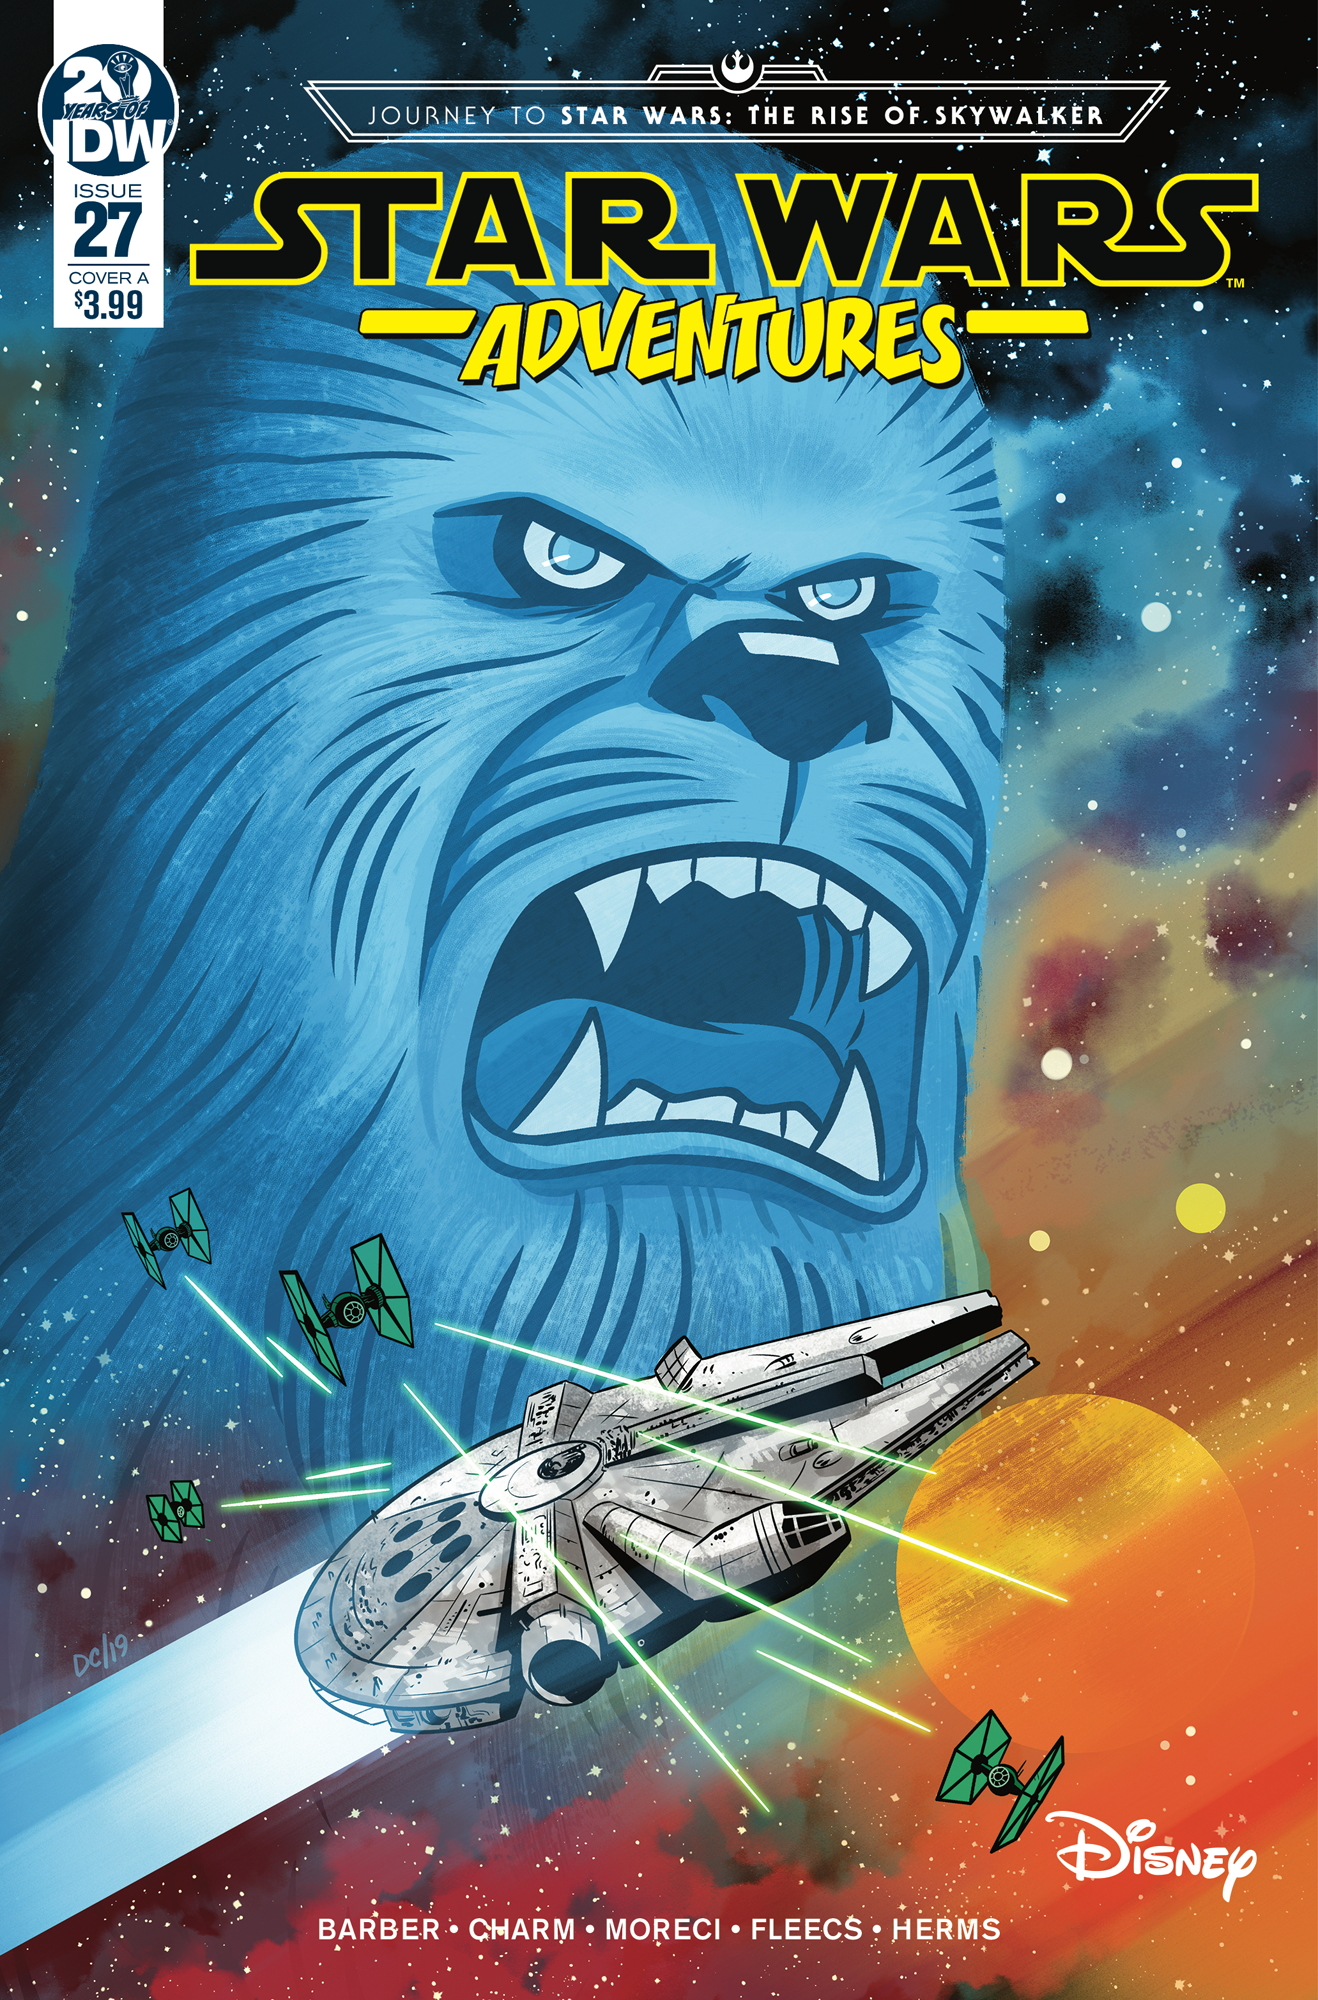 <em>Star Wars Adventures</em> #27 (Cover A by Derek Charm)